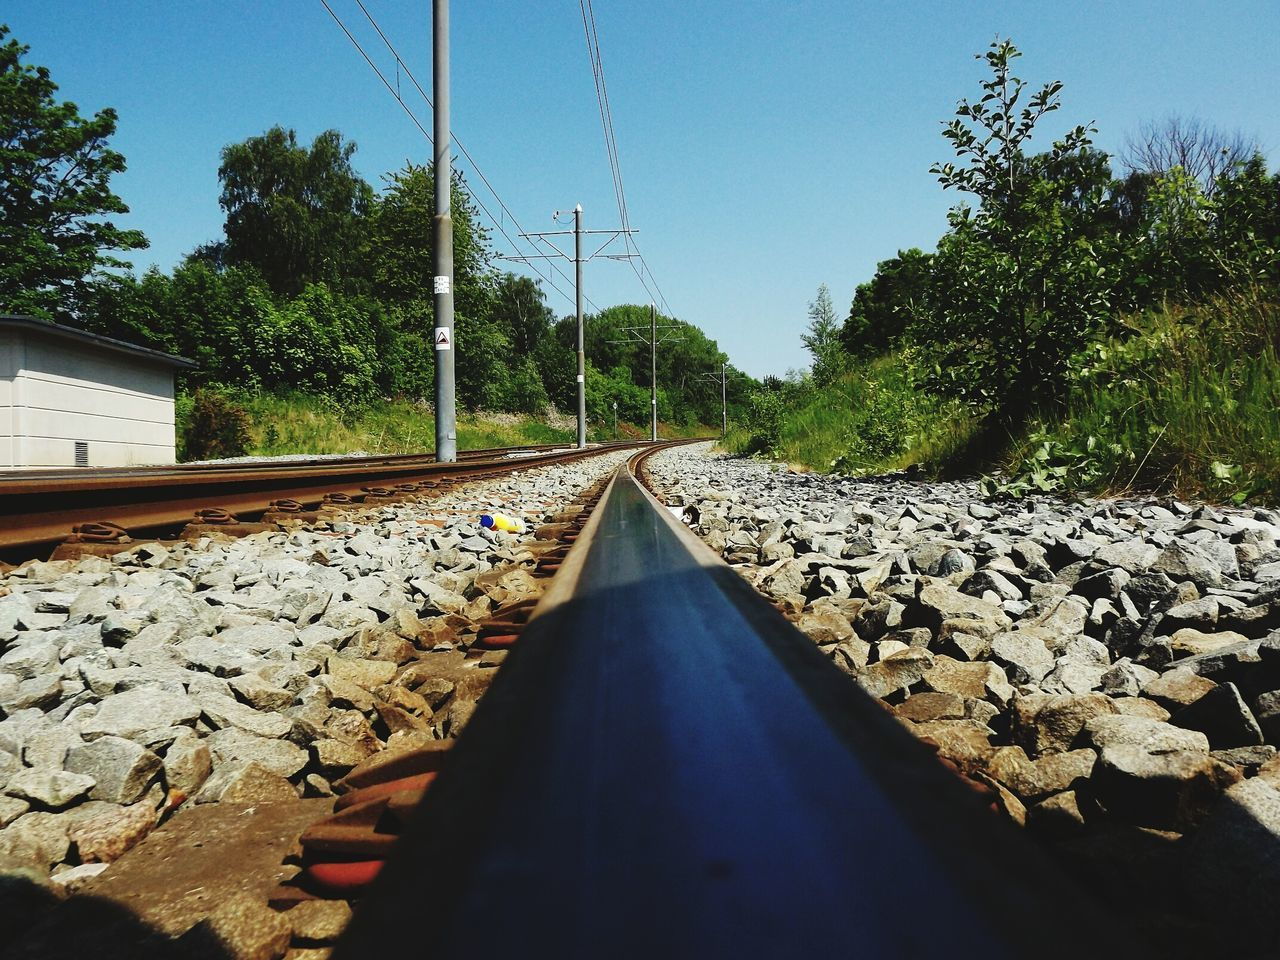 railroad track, rail transportation, tree, the way forward, transportation, day, cable, no people, connection, growth, nature, outdoors, sky, railroad tie, clear sky, electricity pylon